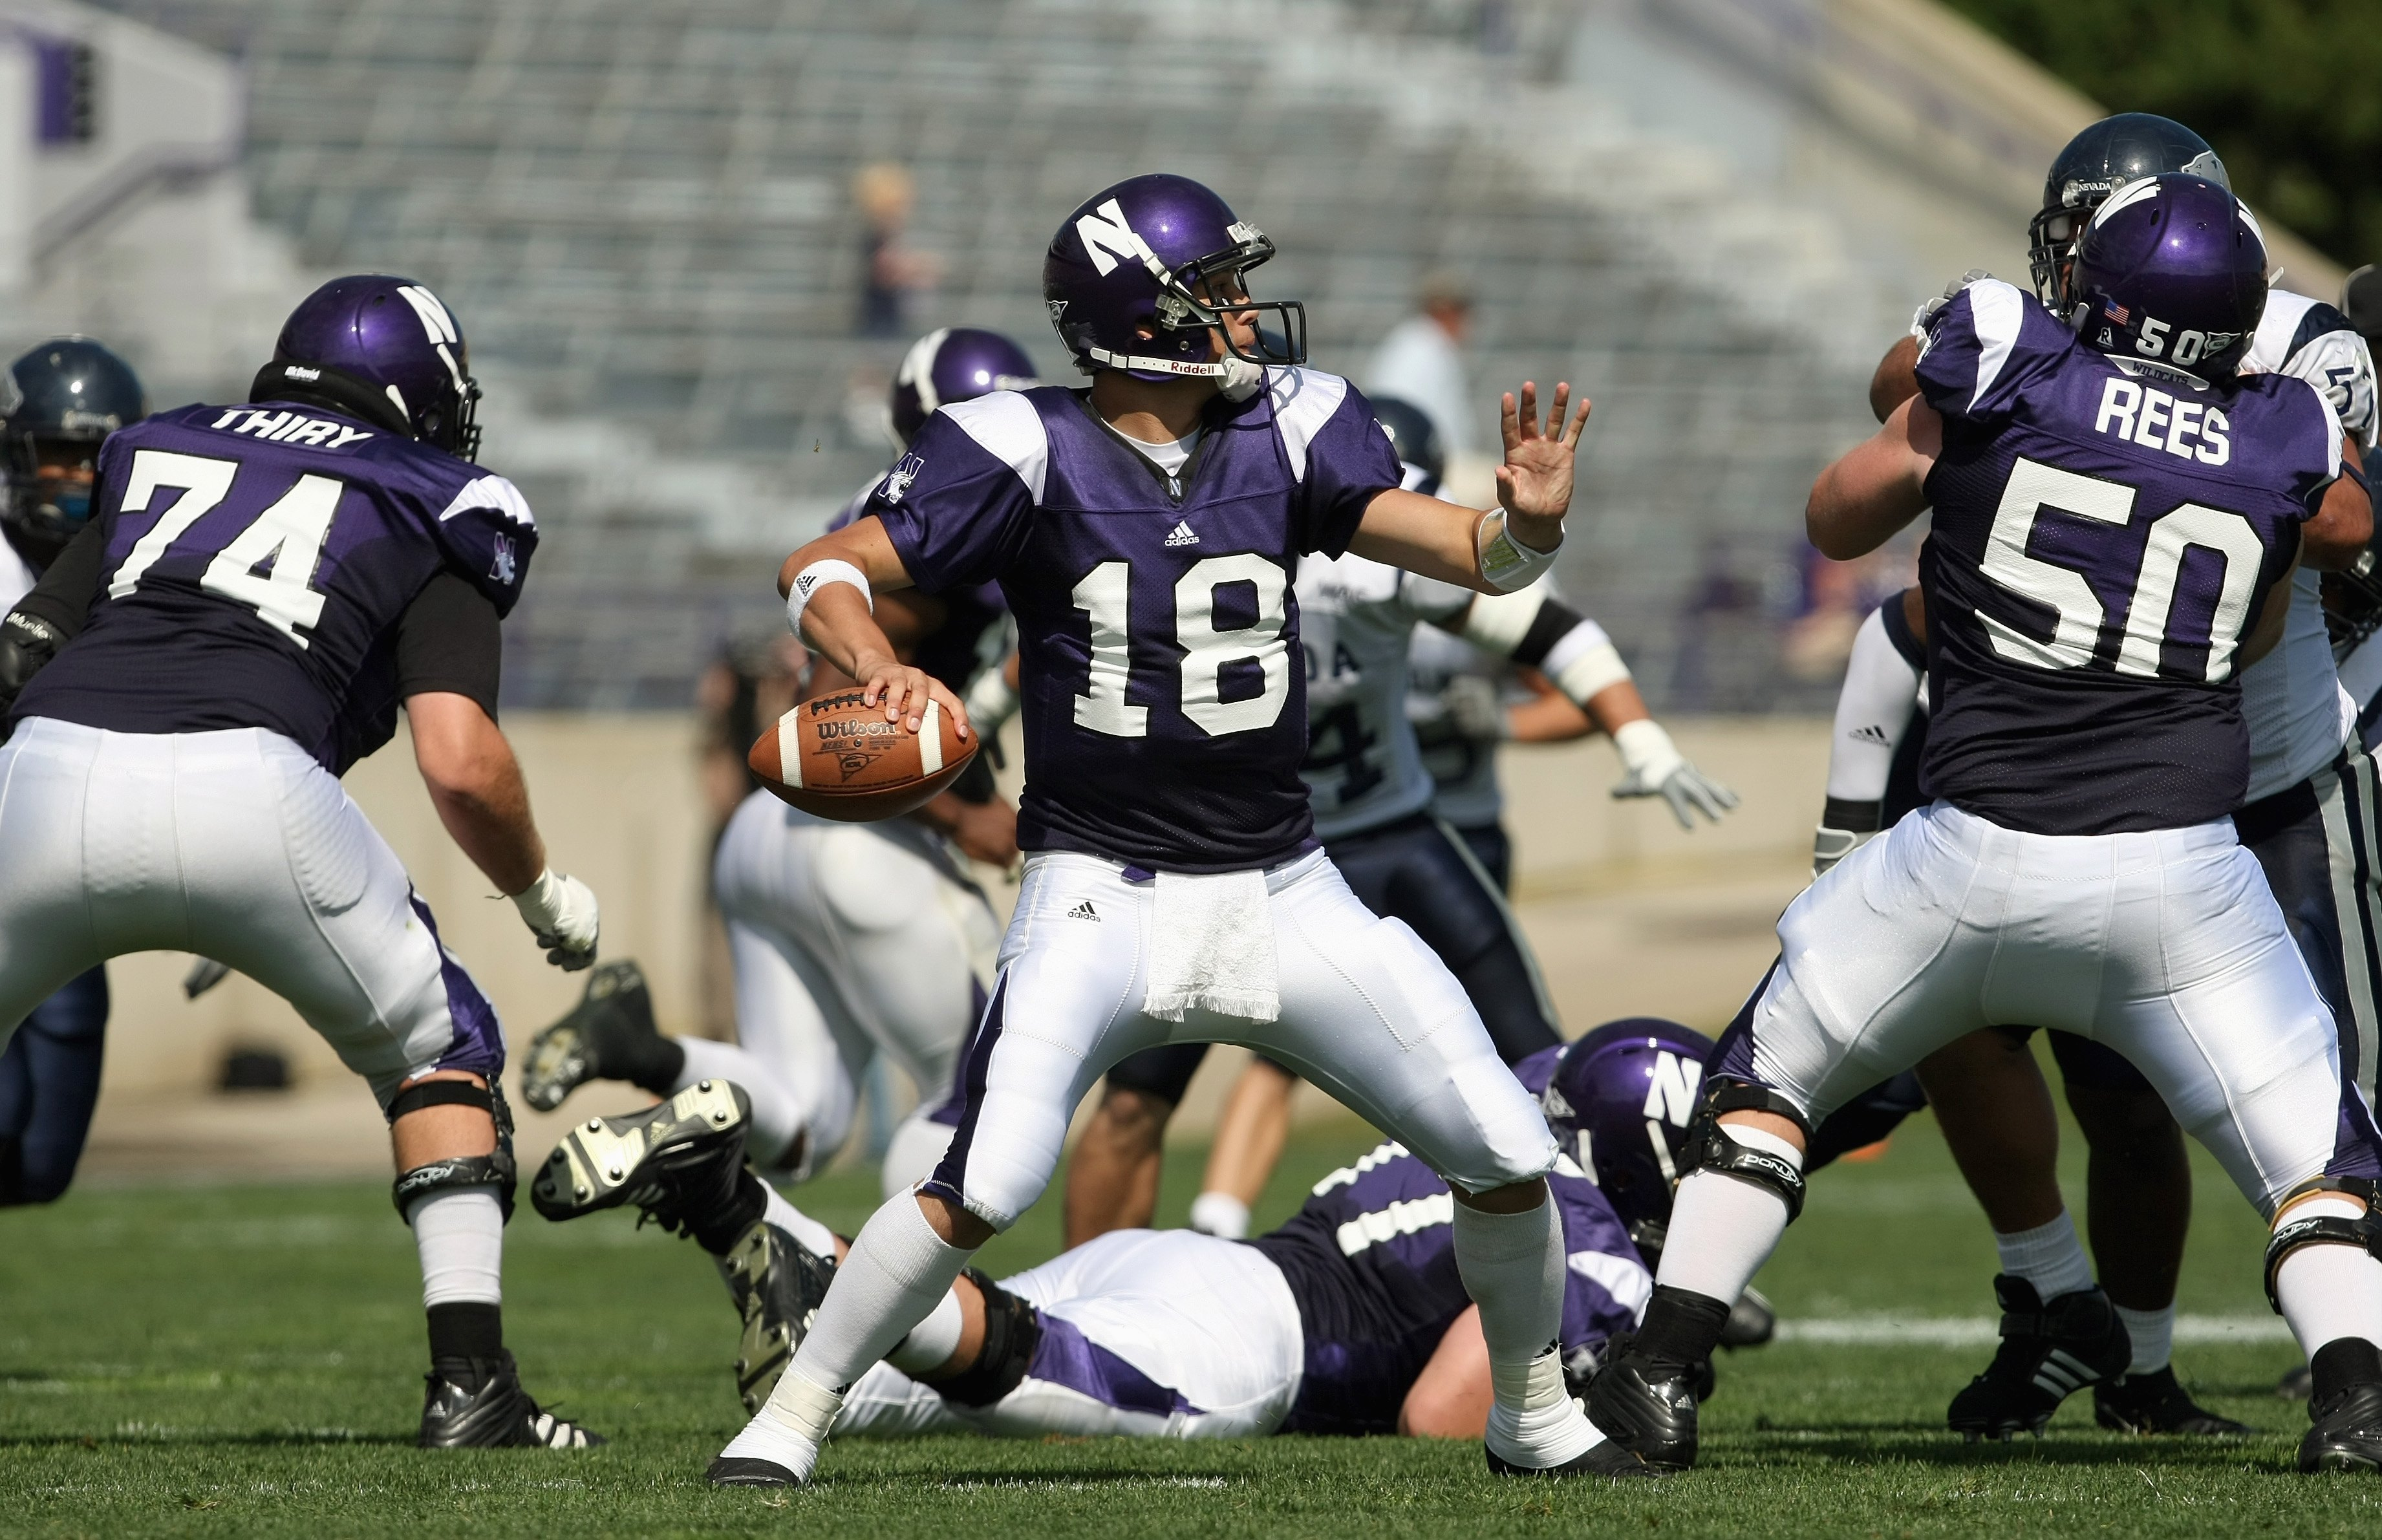 EVANSTON, IL - SEPTEMBER 8: Quarterback C.J. Bacher #18 of the Northwestern Wildcats passes the ball during the game against the Nevada Wolf Pack on September 8, 2007 at Ryan Field at Northwestern University in Evanston, Illinois. (Photo by Jonathan Danie